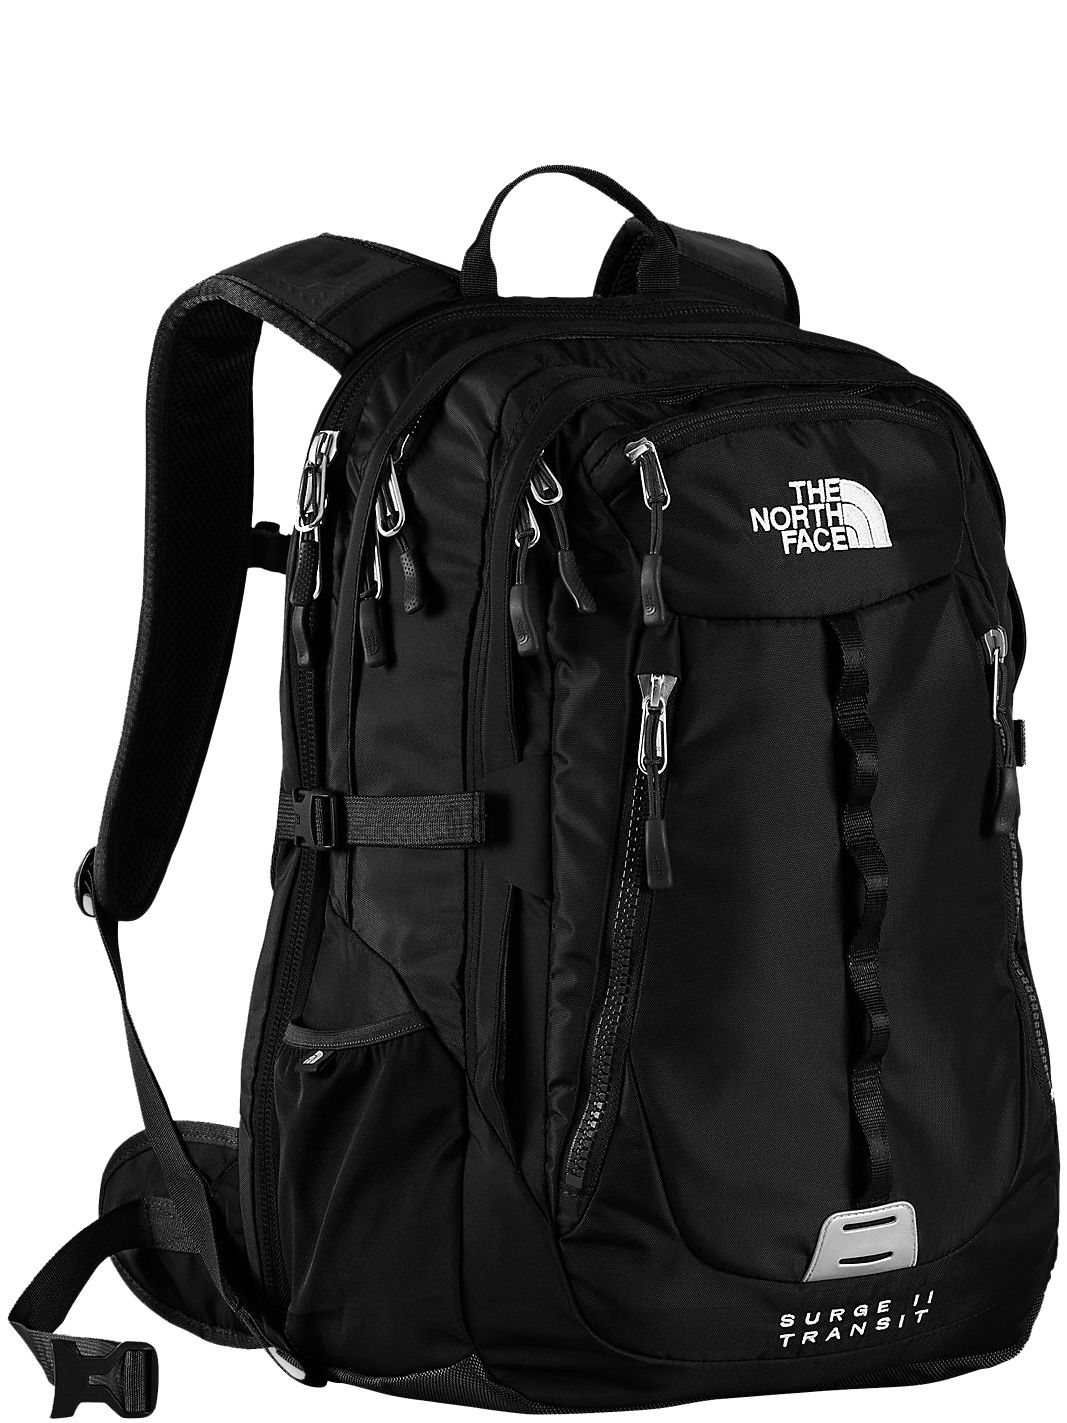 807c2c075 The North Face Surge Transit Laptop Backpack- Fenix Toulouse Handball